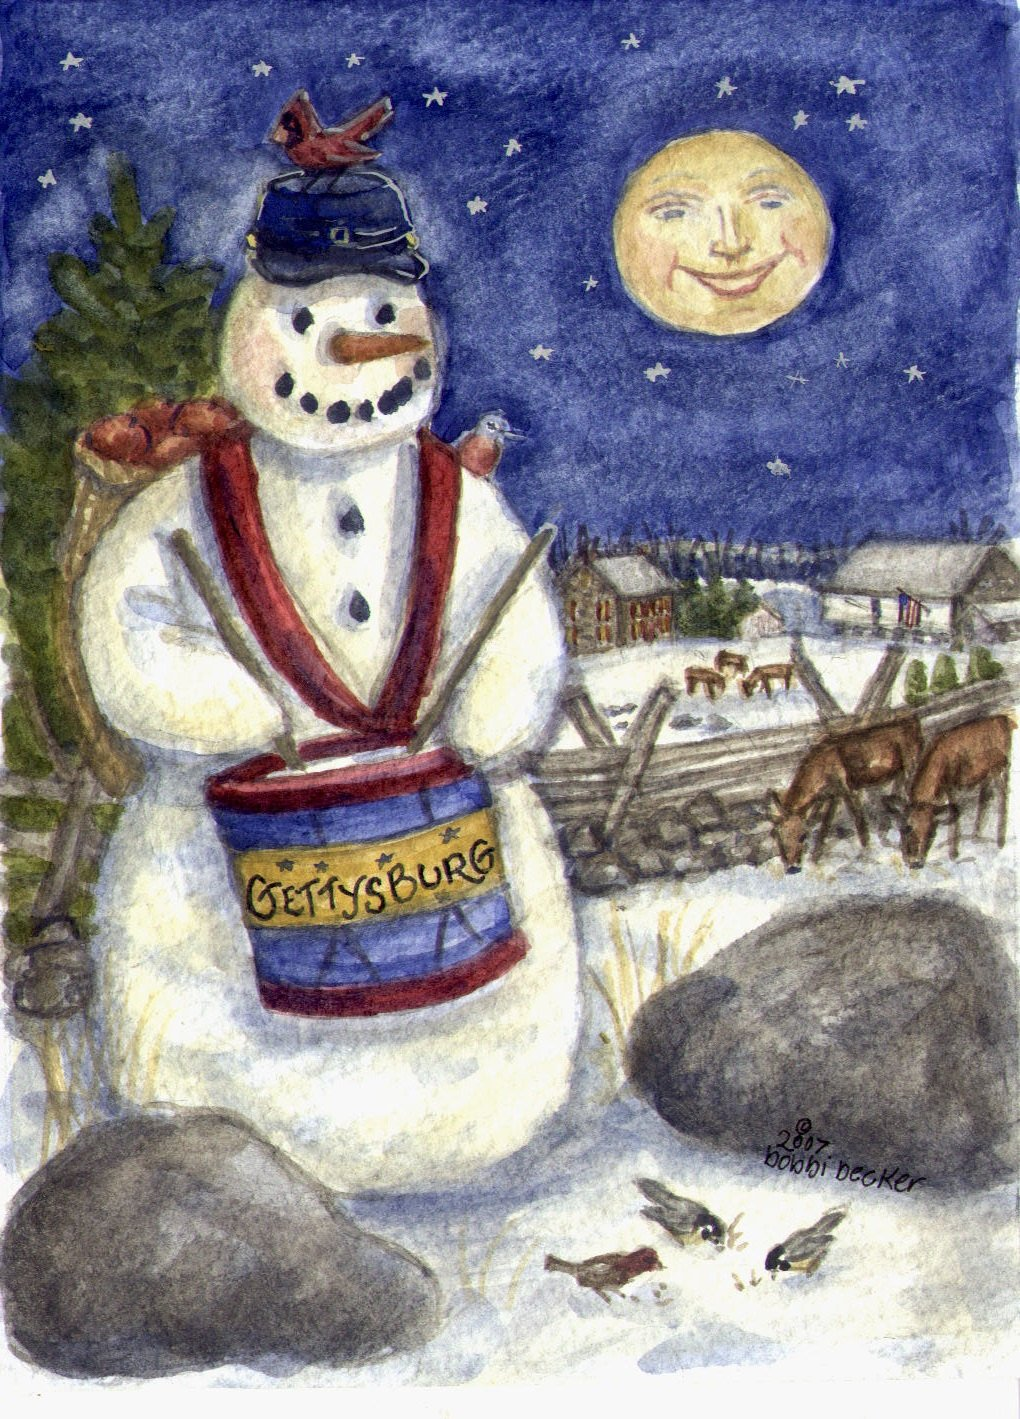 Watercolor Painting Snowman Decor, Gettysburg PA Snowman Art and Holiday Decor, Gettysburg